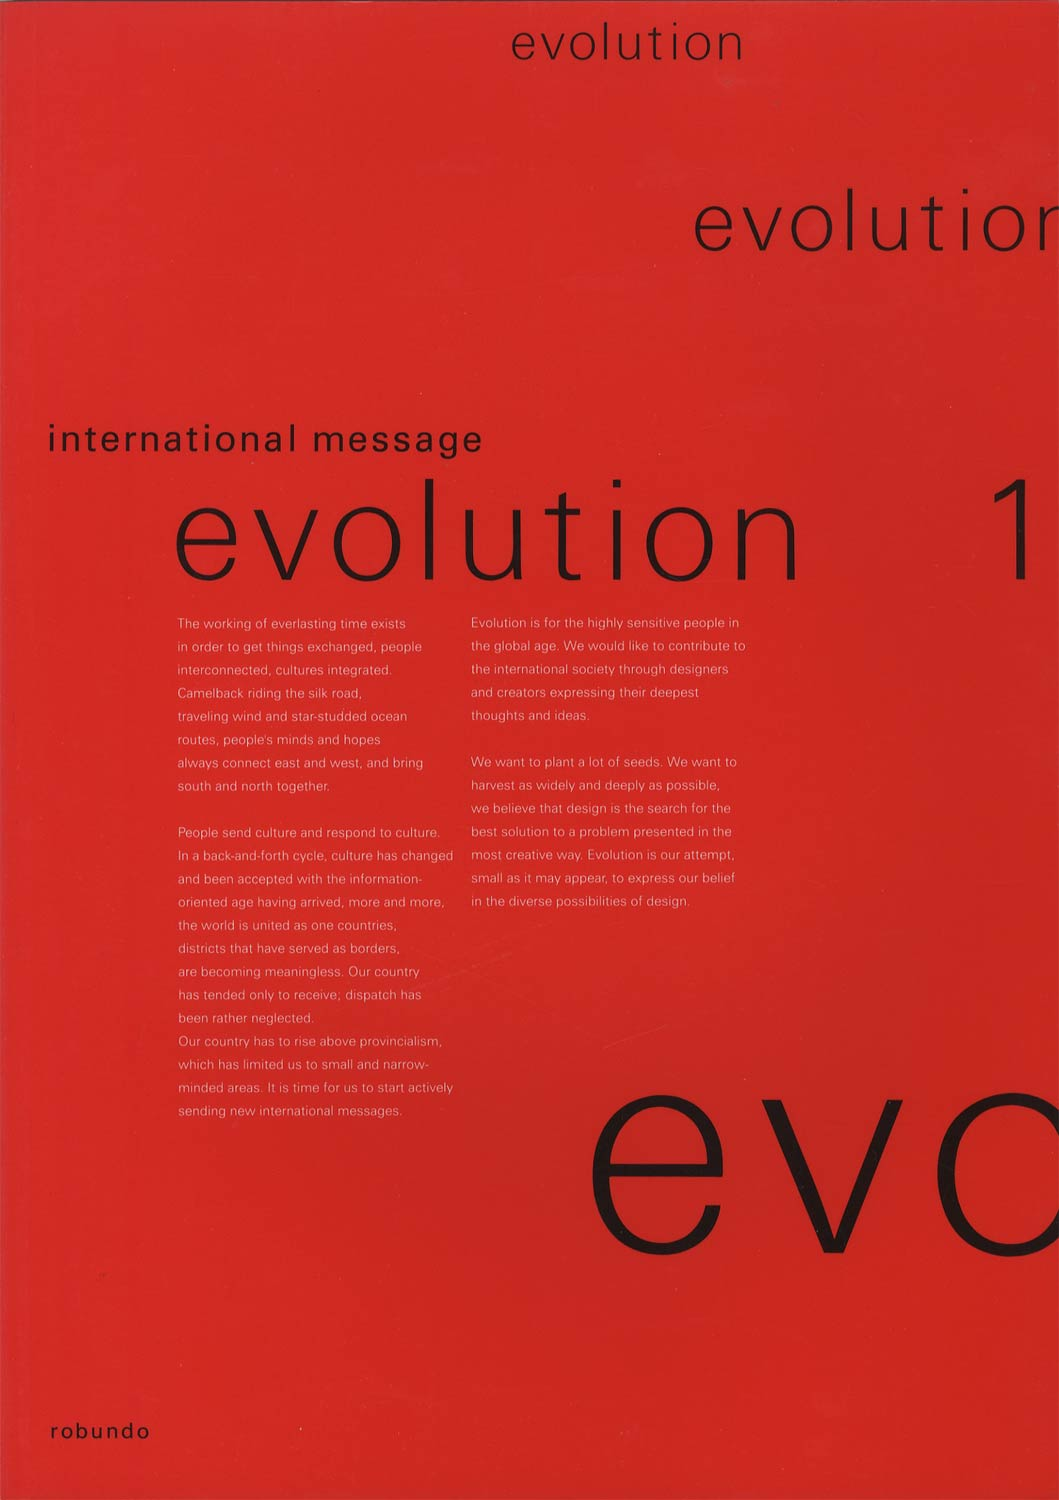 evolution 1 International message